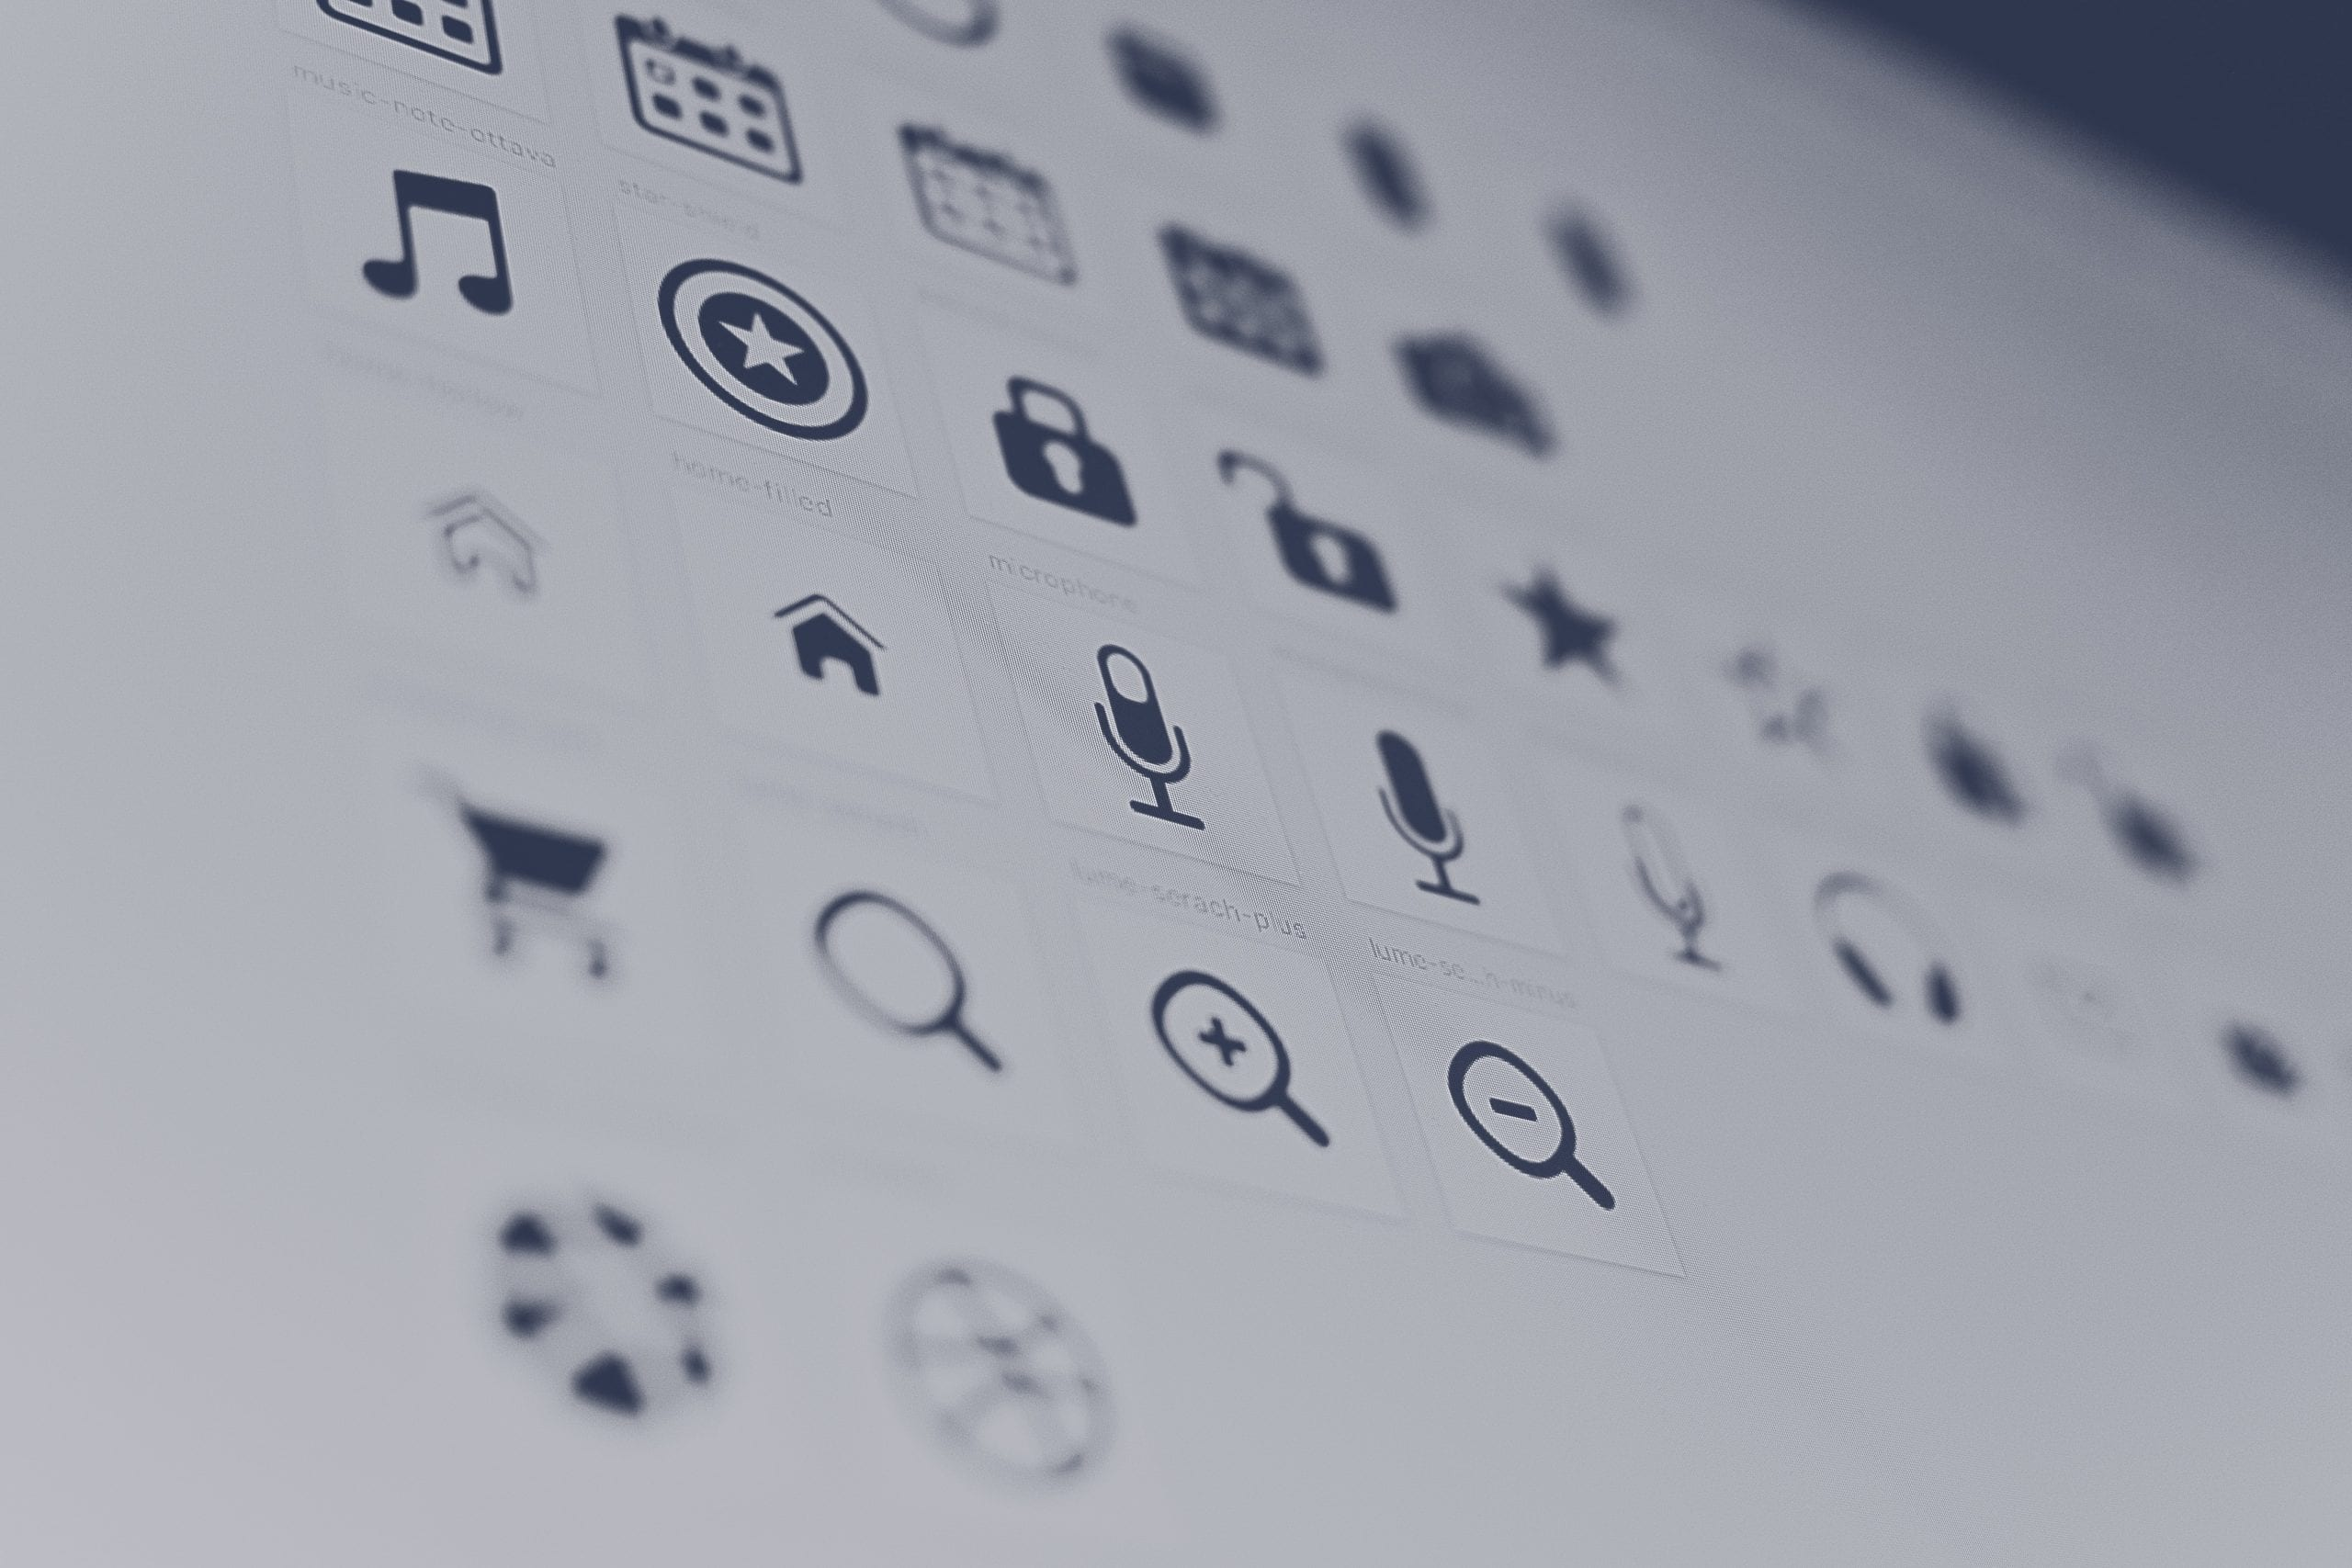 How to create a business logo